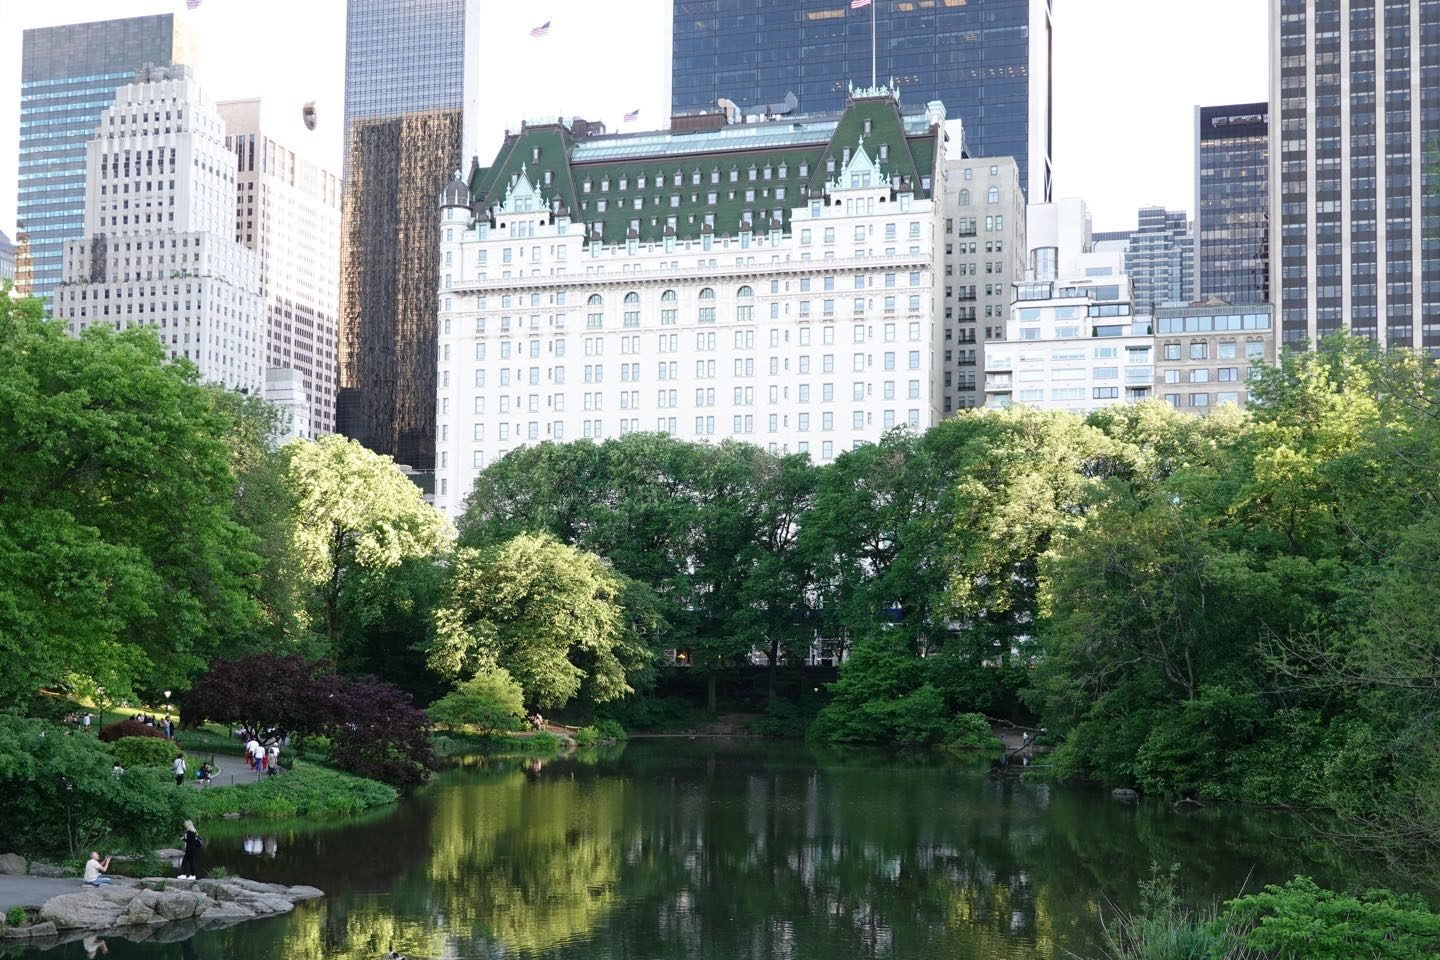 Lovely view in NYC. Plaza Hotel viewed from the Gapstow Bridge, Central Park.